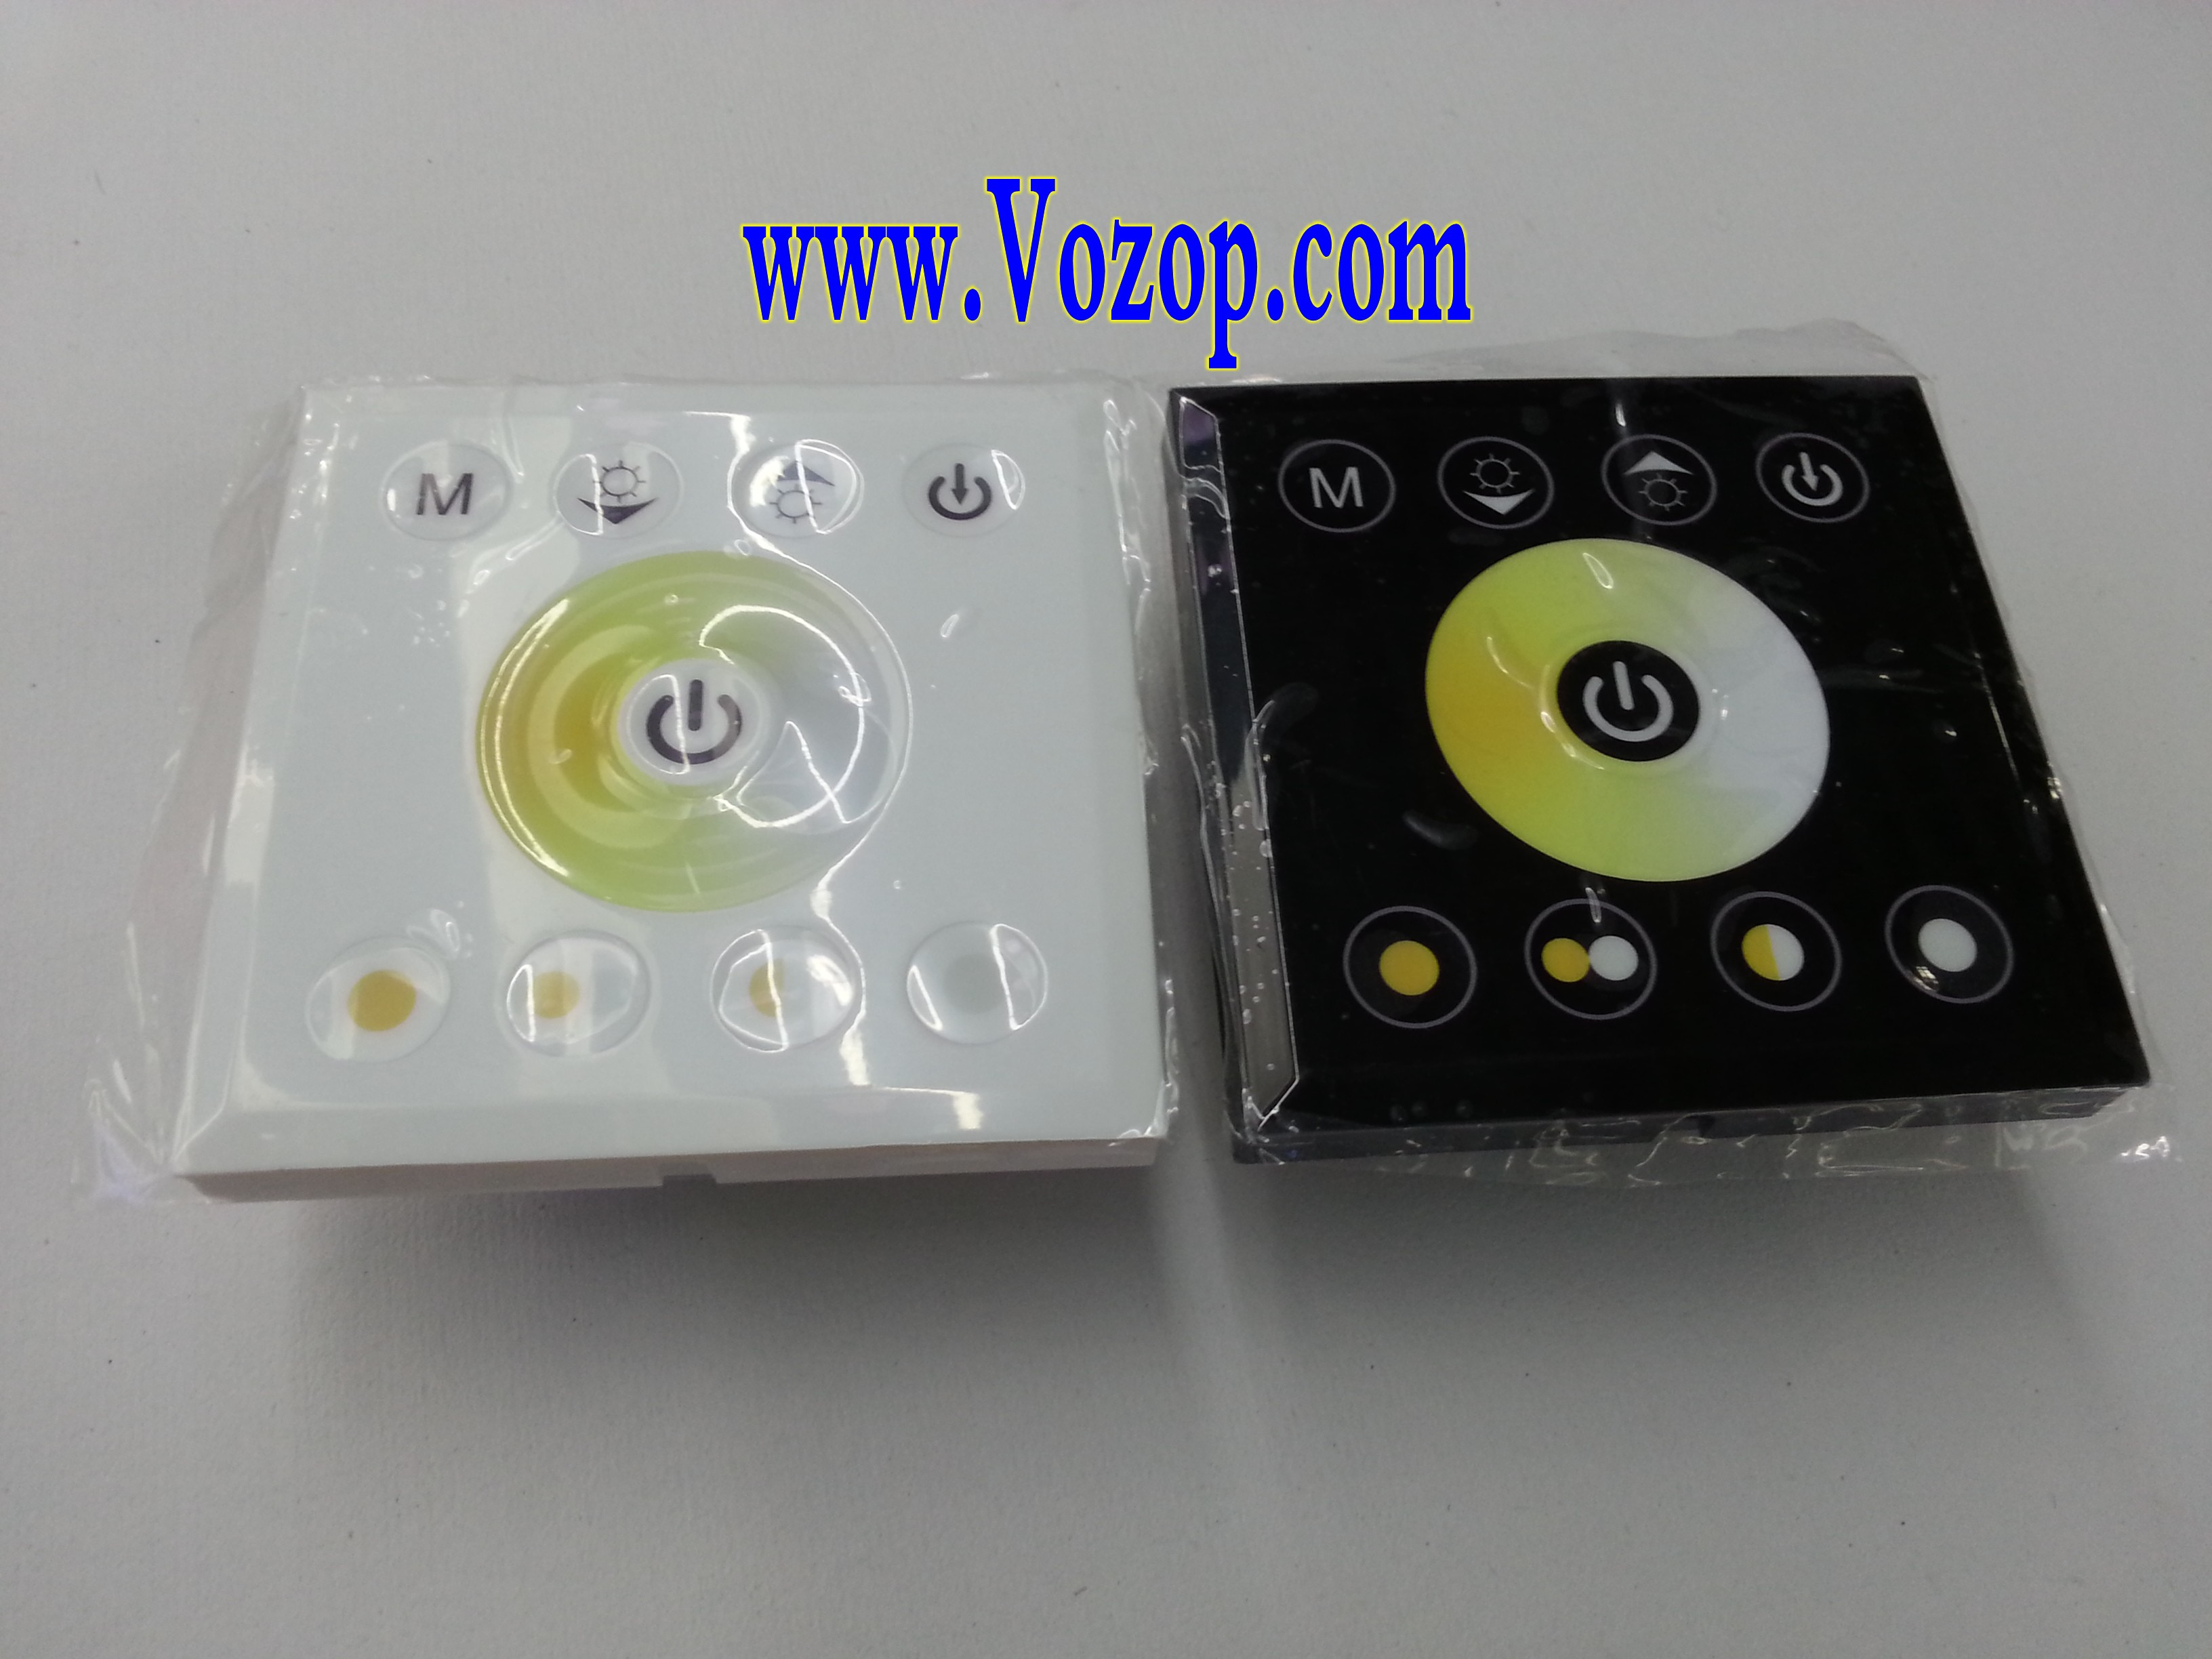 Ww_Cw_Led_Touch_Panel_Controller_Dimmer_Wall_Switch_Ring_for_led_lights